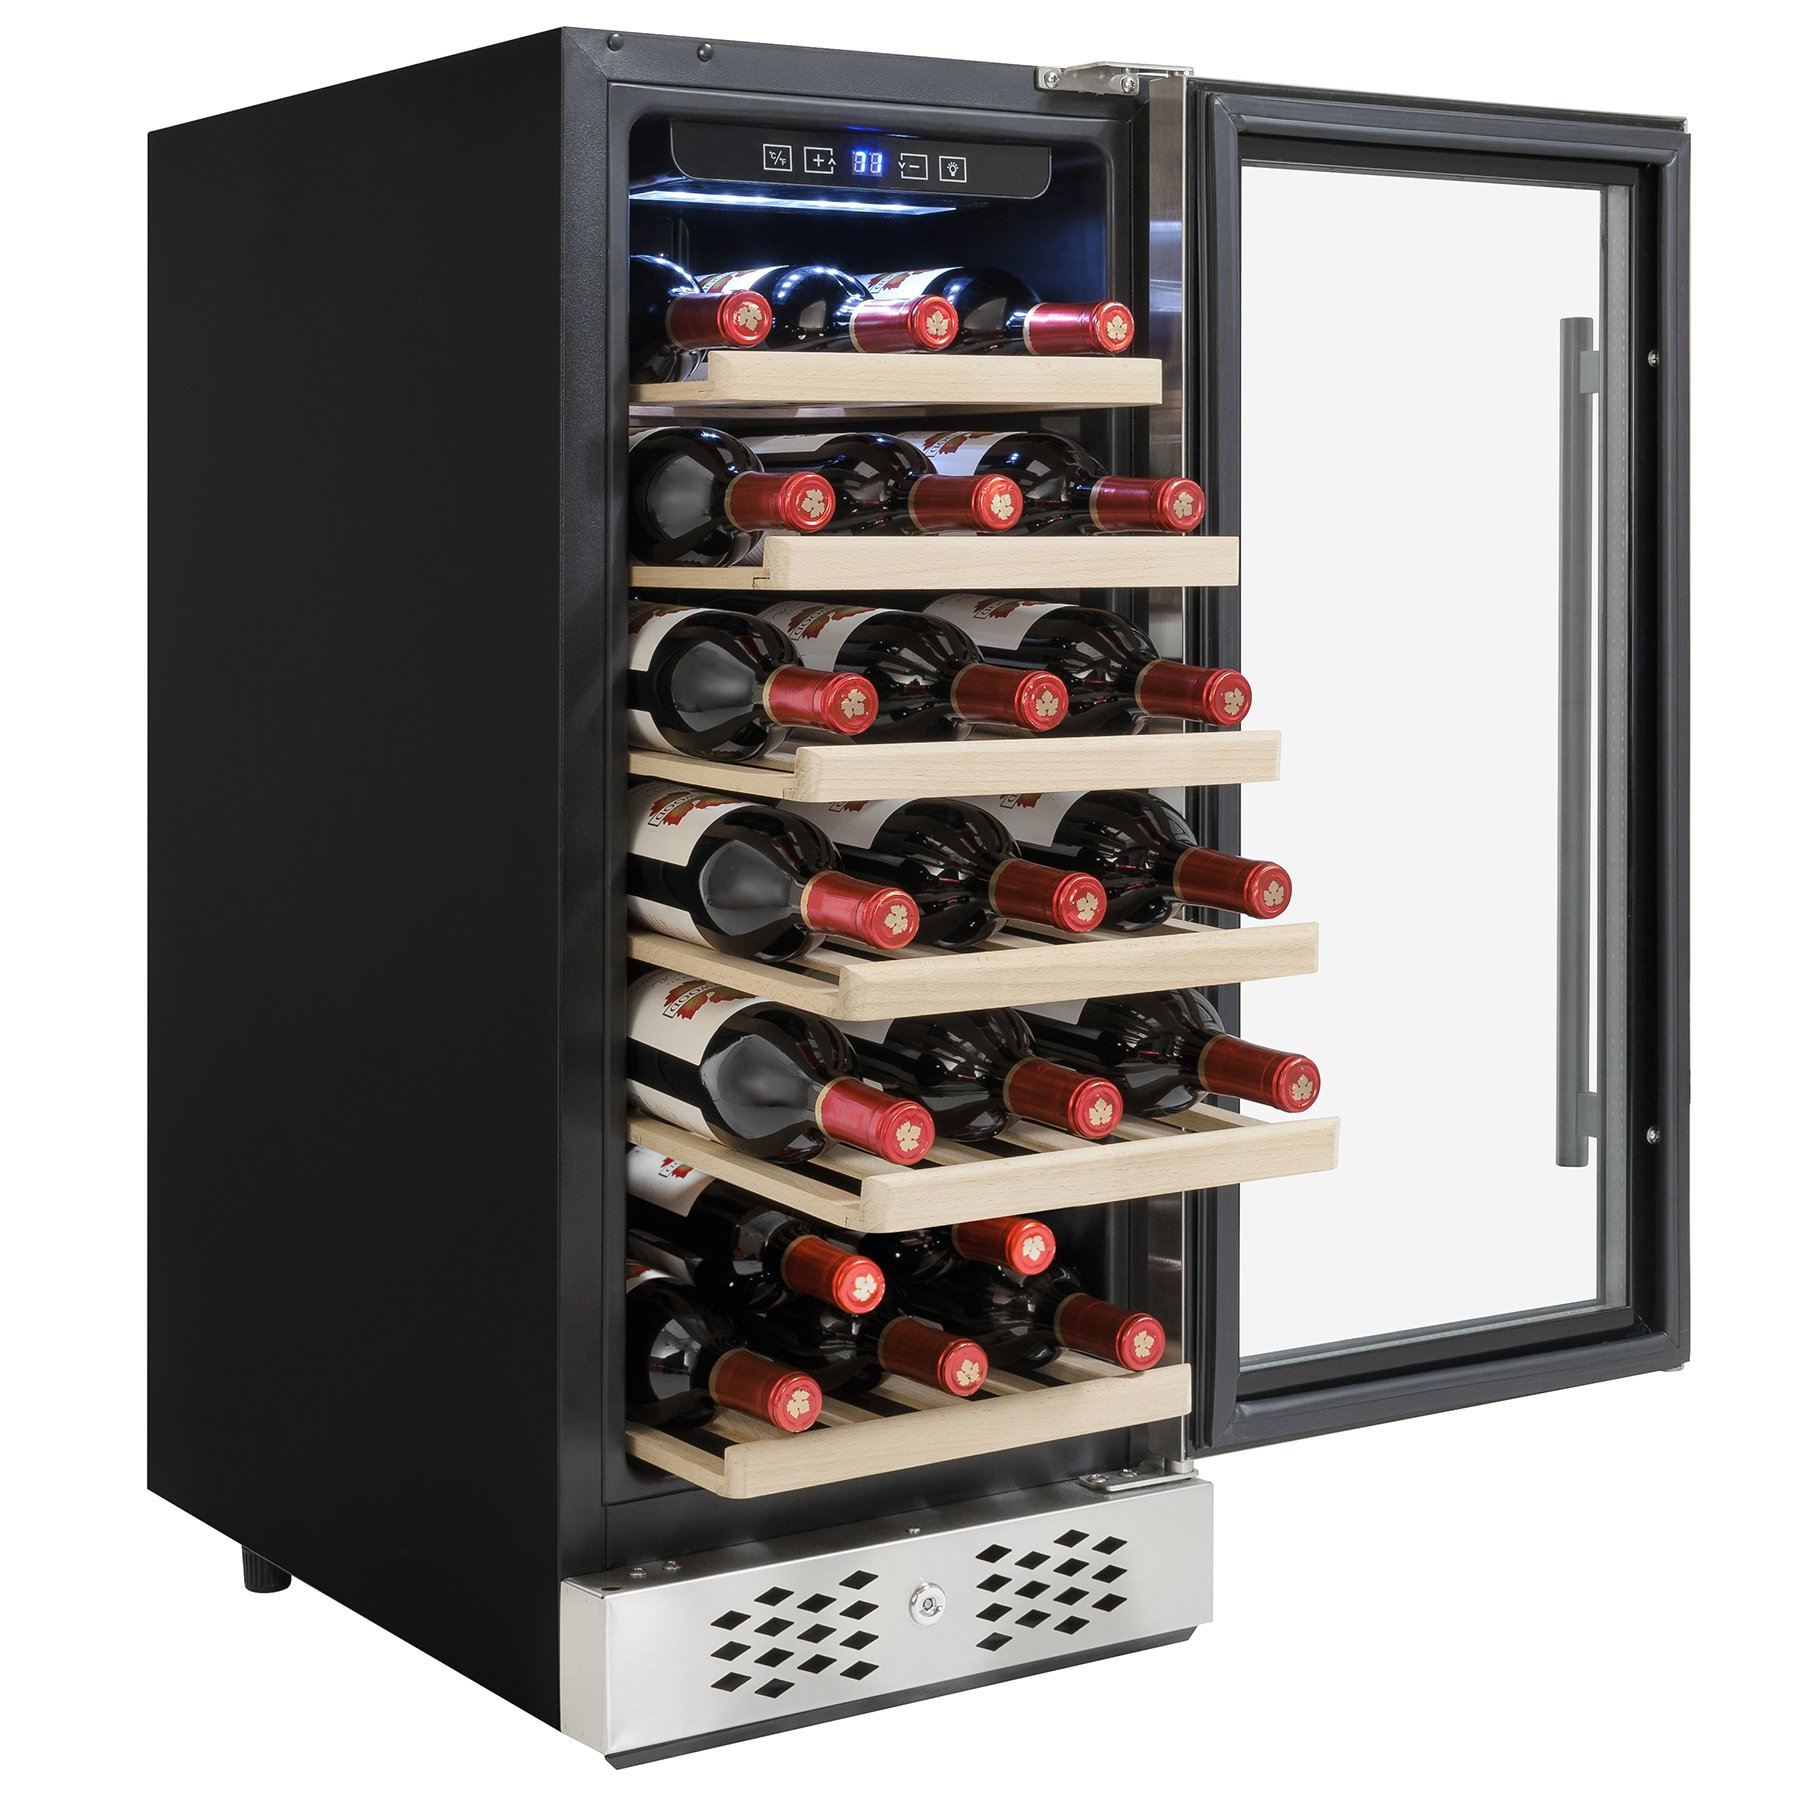 AKDY 30 Bottles Single Zone Adjustable Touch Control Freestanding Compressor Wine Cooler Cellar